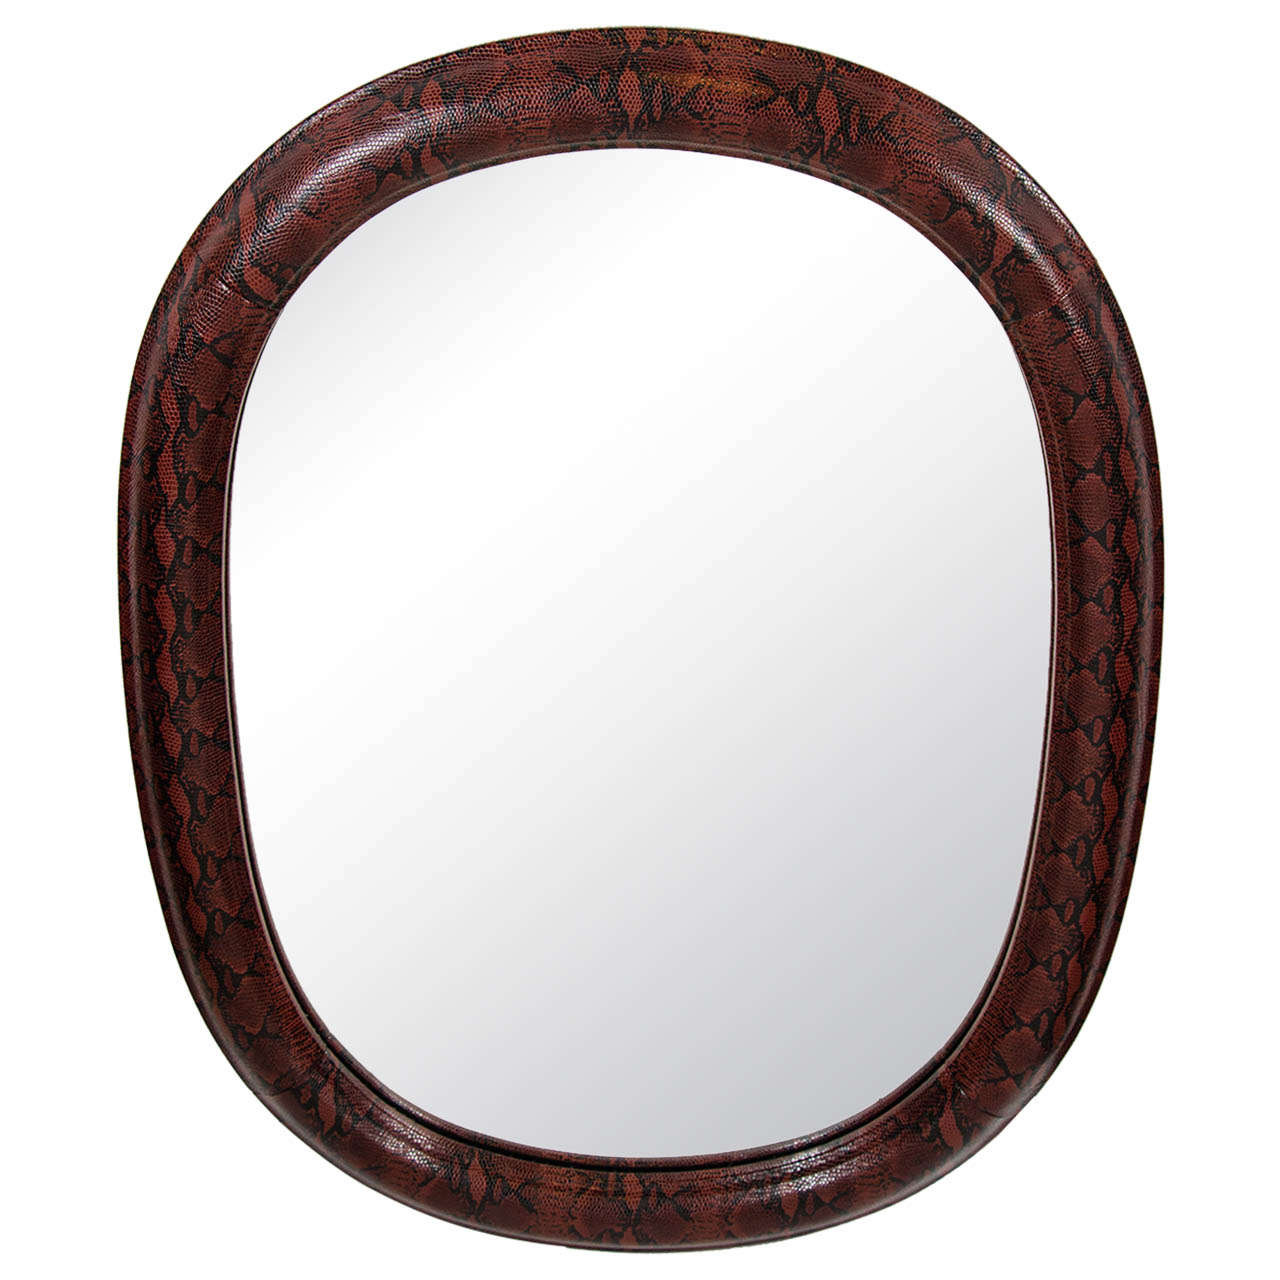 Stunning mid-century modern rounded mirror with slight oval form. Wrapped in red and black snakeskin print embossed leather. Leather over hand-carved wood with half round molded frame. In the style of Karl Springer.